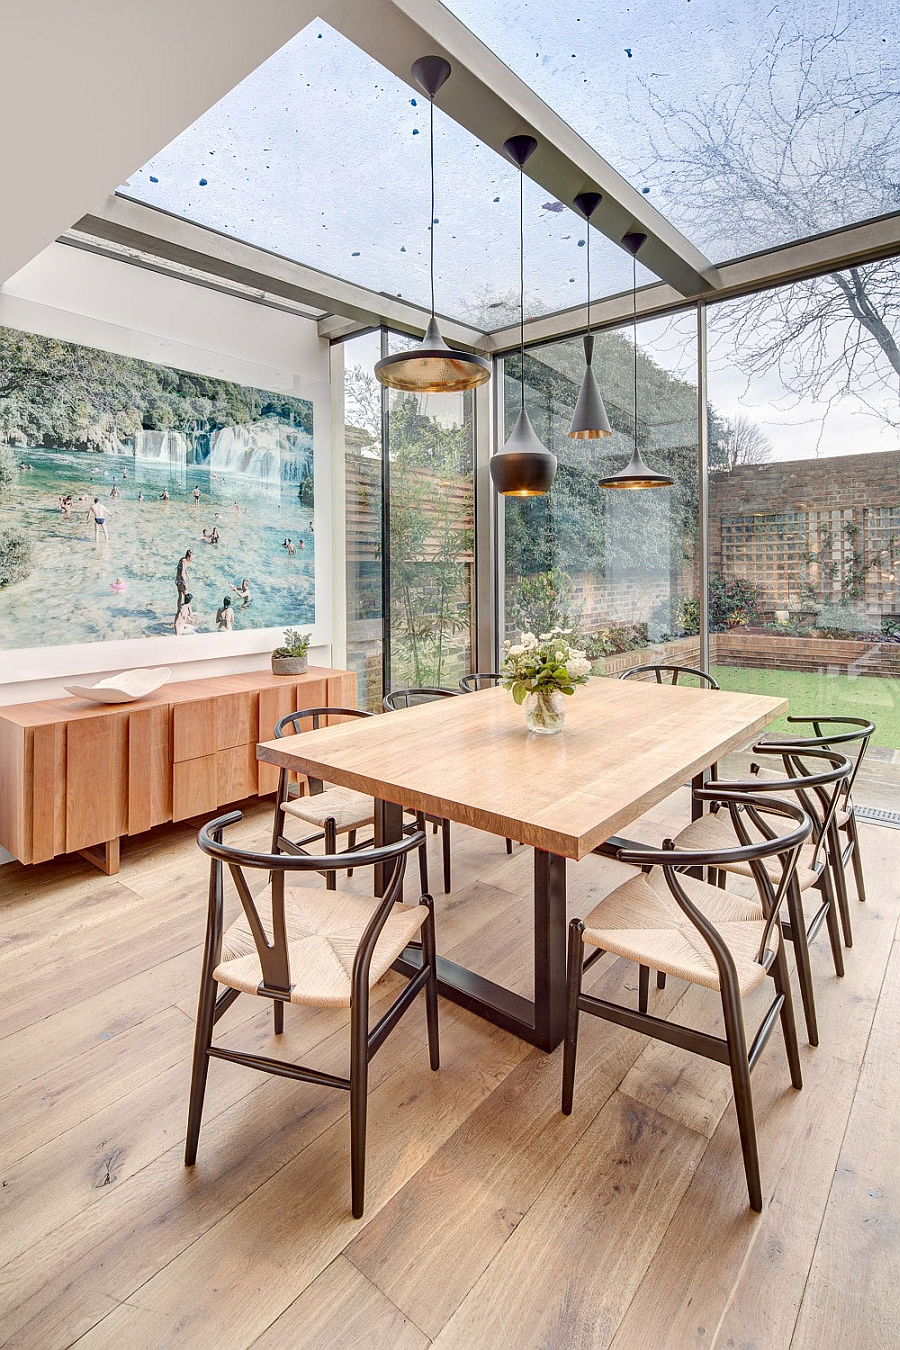 Sun room styled addition to the kitchen